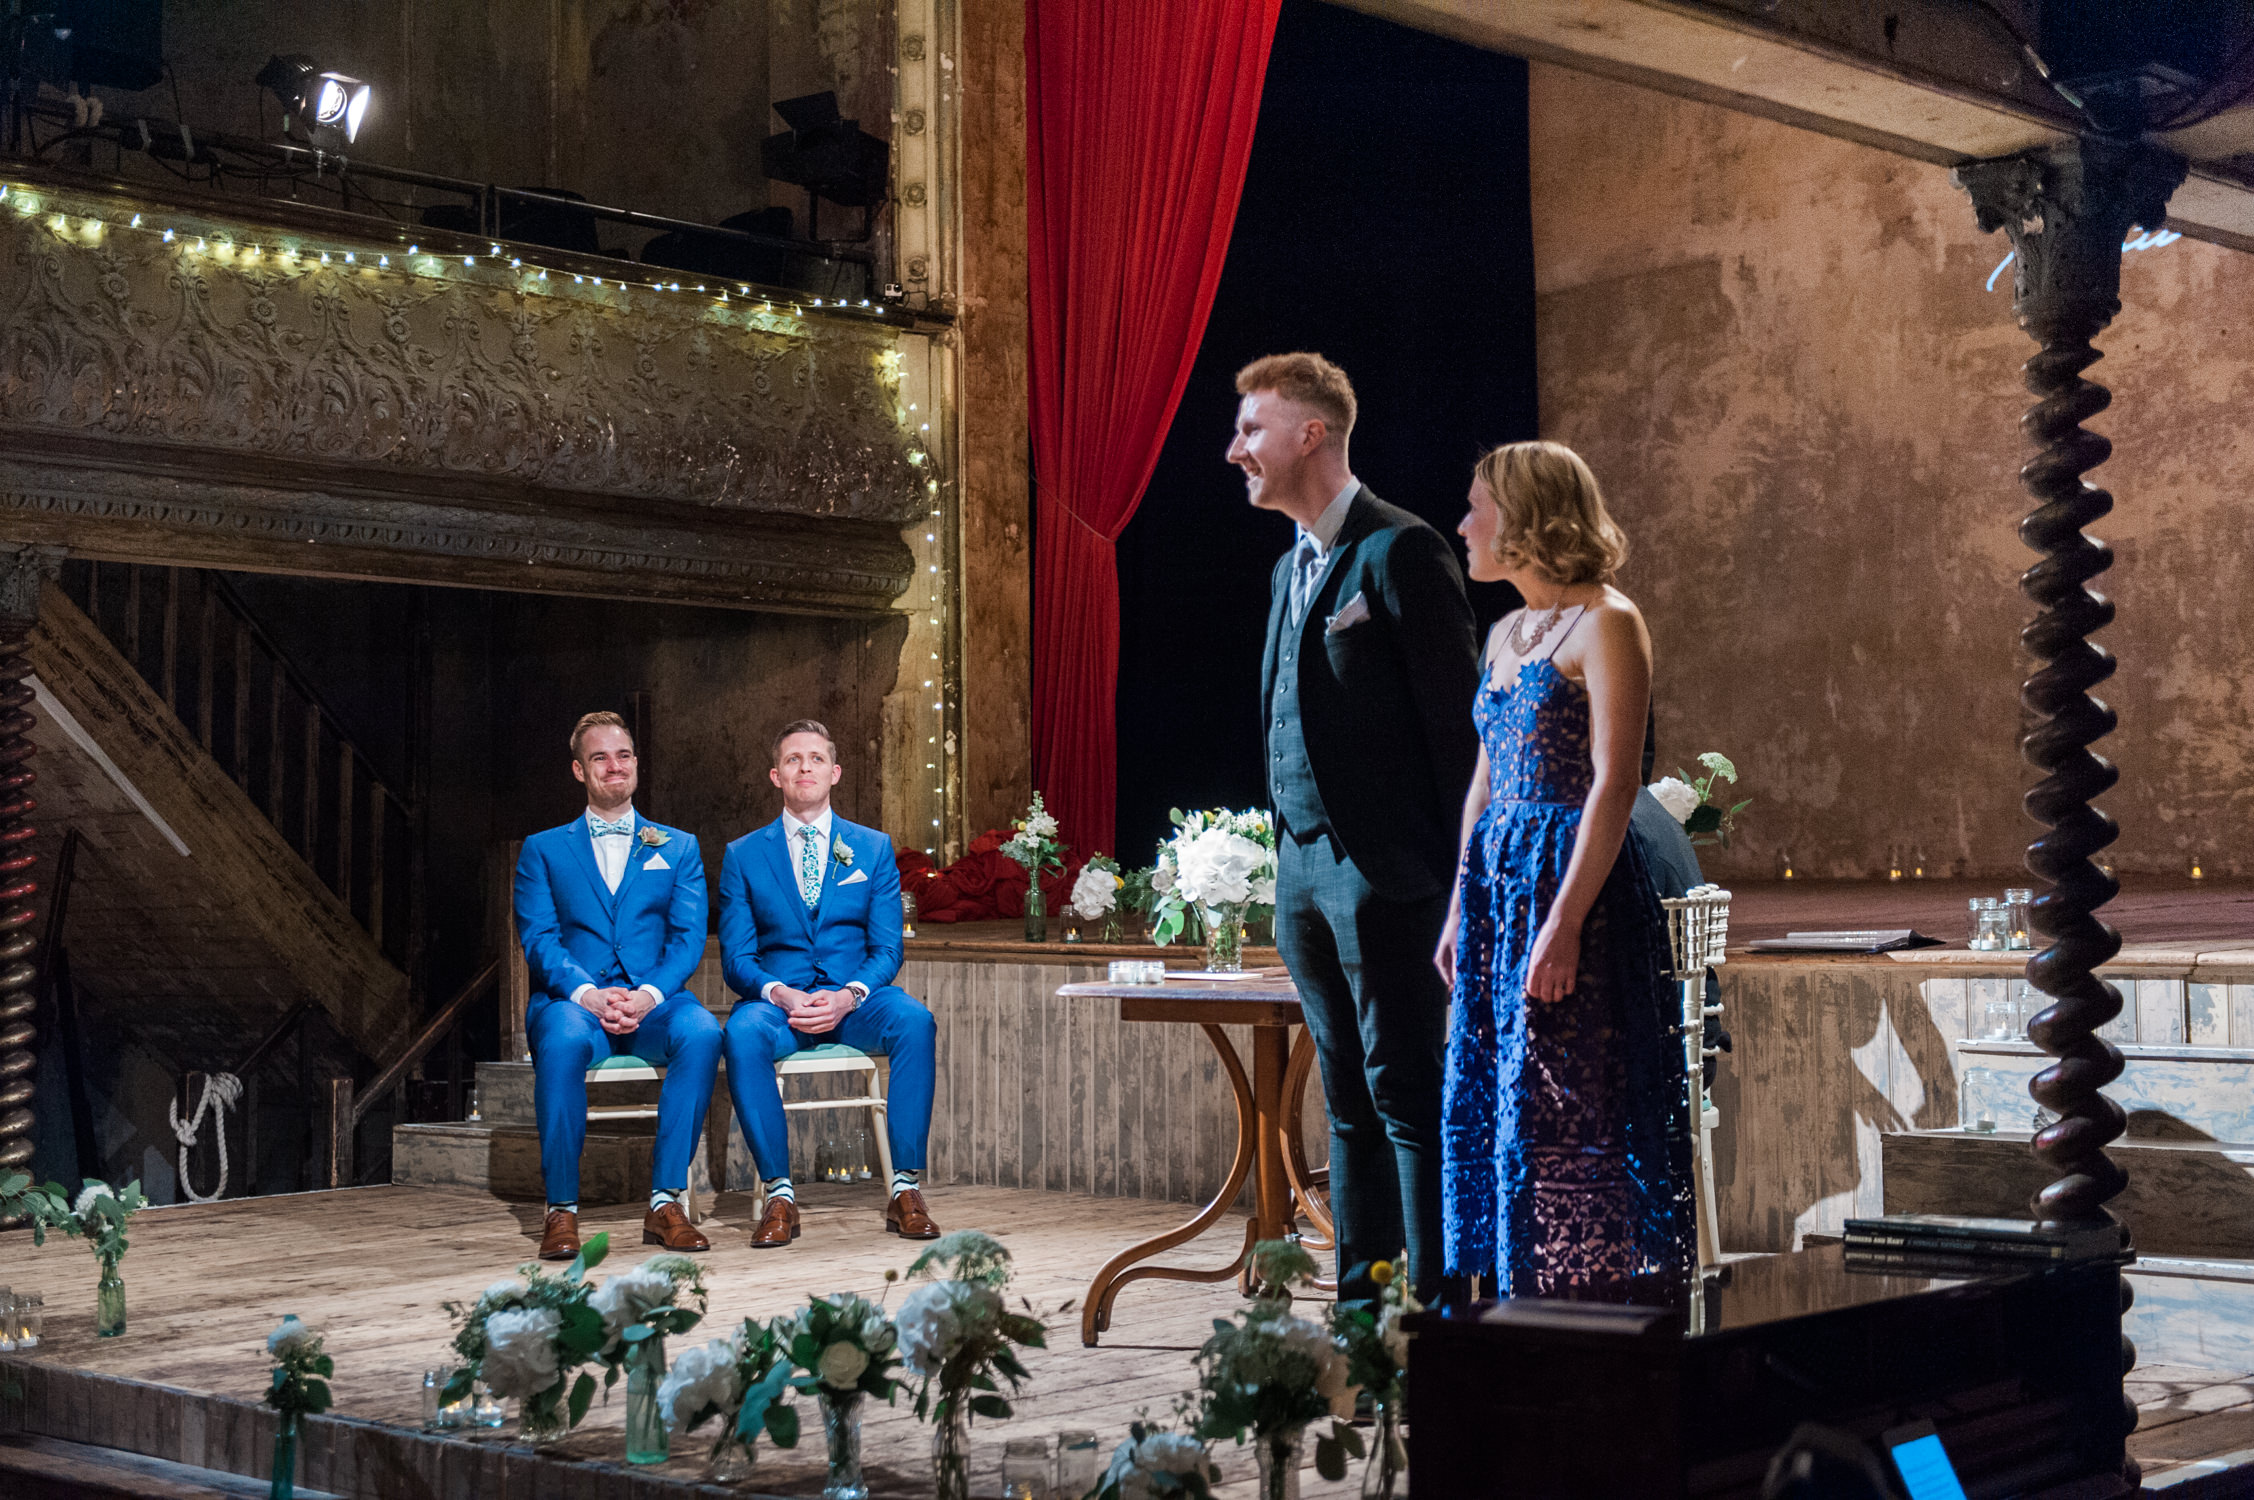 A tip to infuse your wedding with a theater theme, is to get married in a theatre